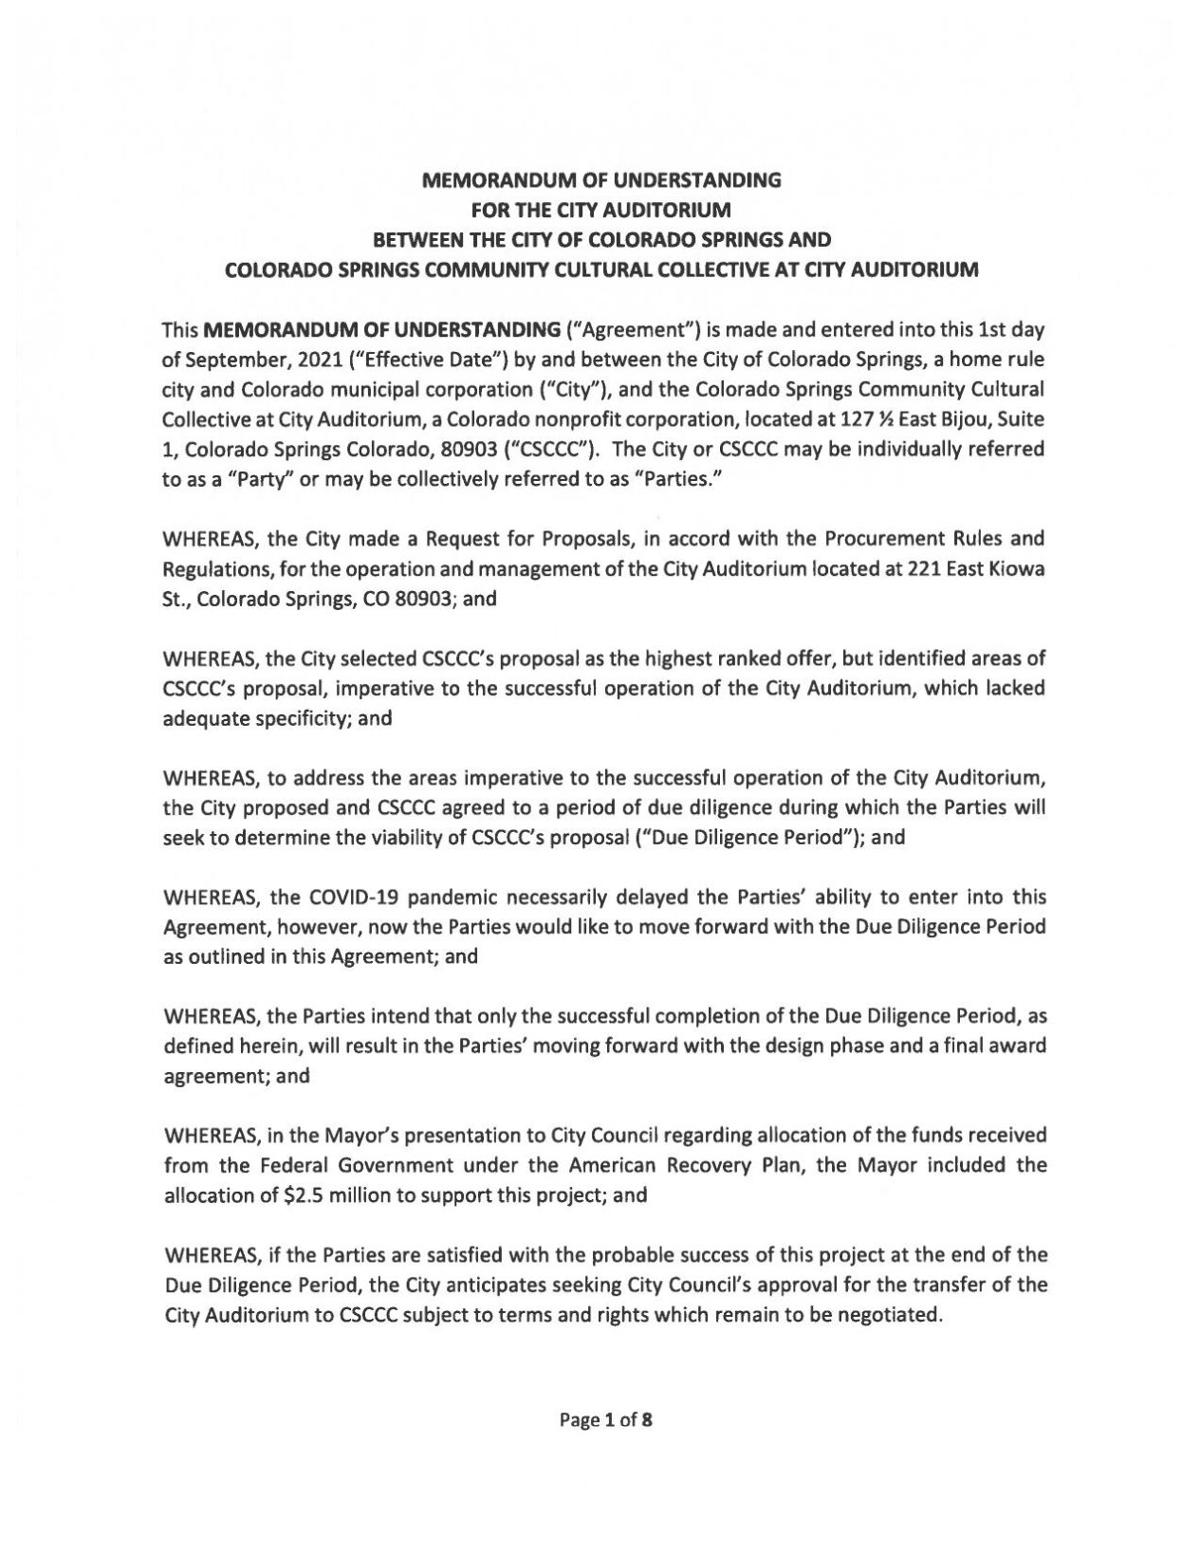 City Aud MOU Executed (2).pdf